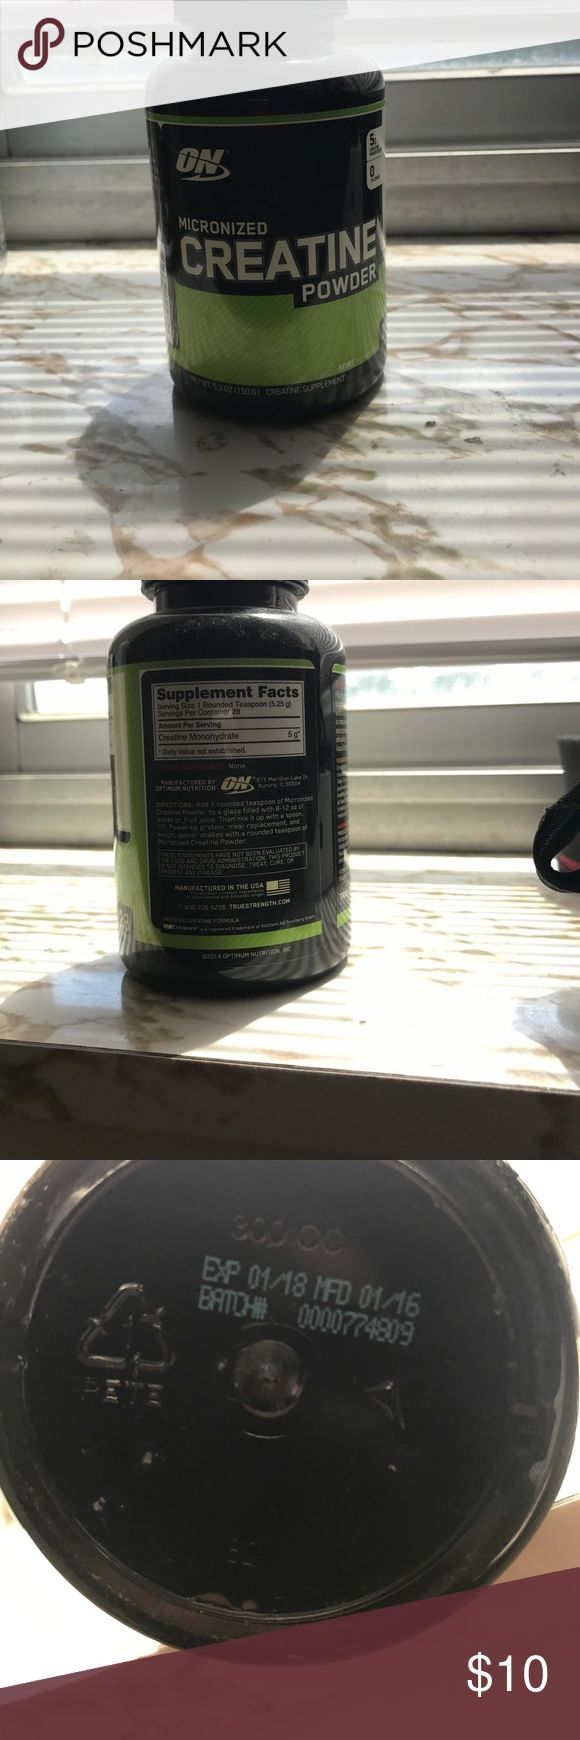 Micronized Creatine Powder Basically just bought this a few months ago. Never used it! Other